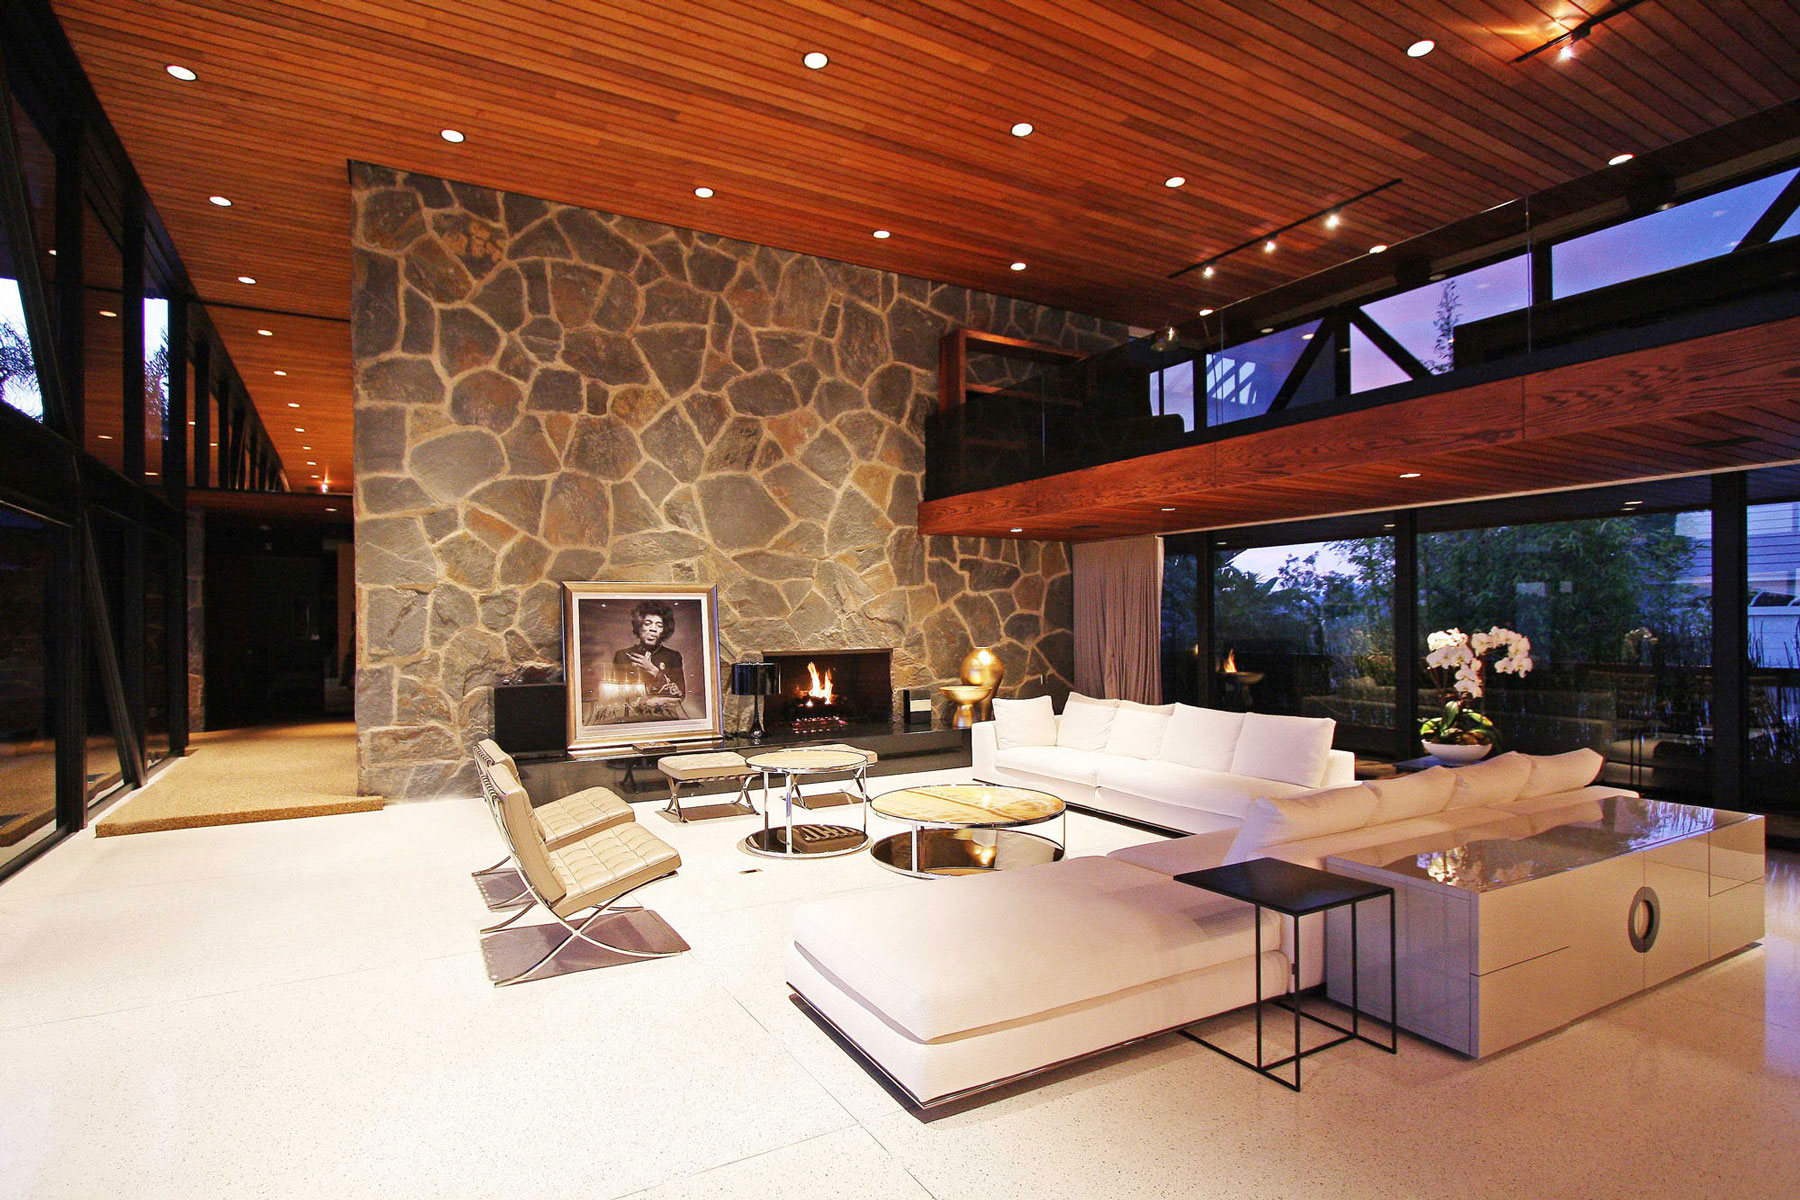 Living Room, Evening, Lighting, Revamped Interior in Beverly Hills